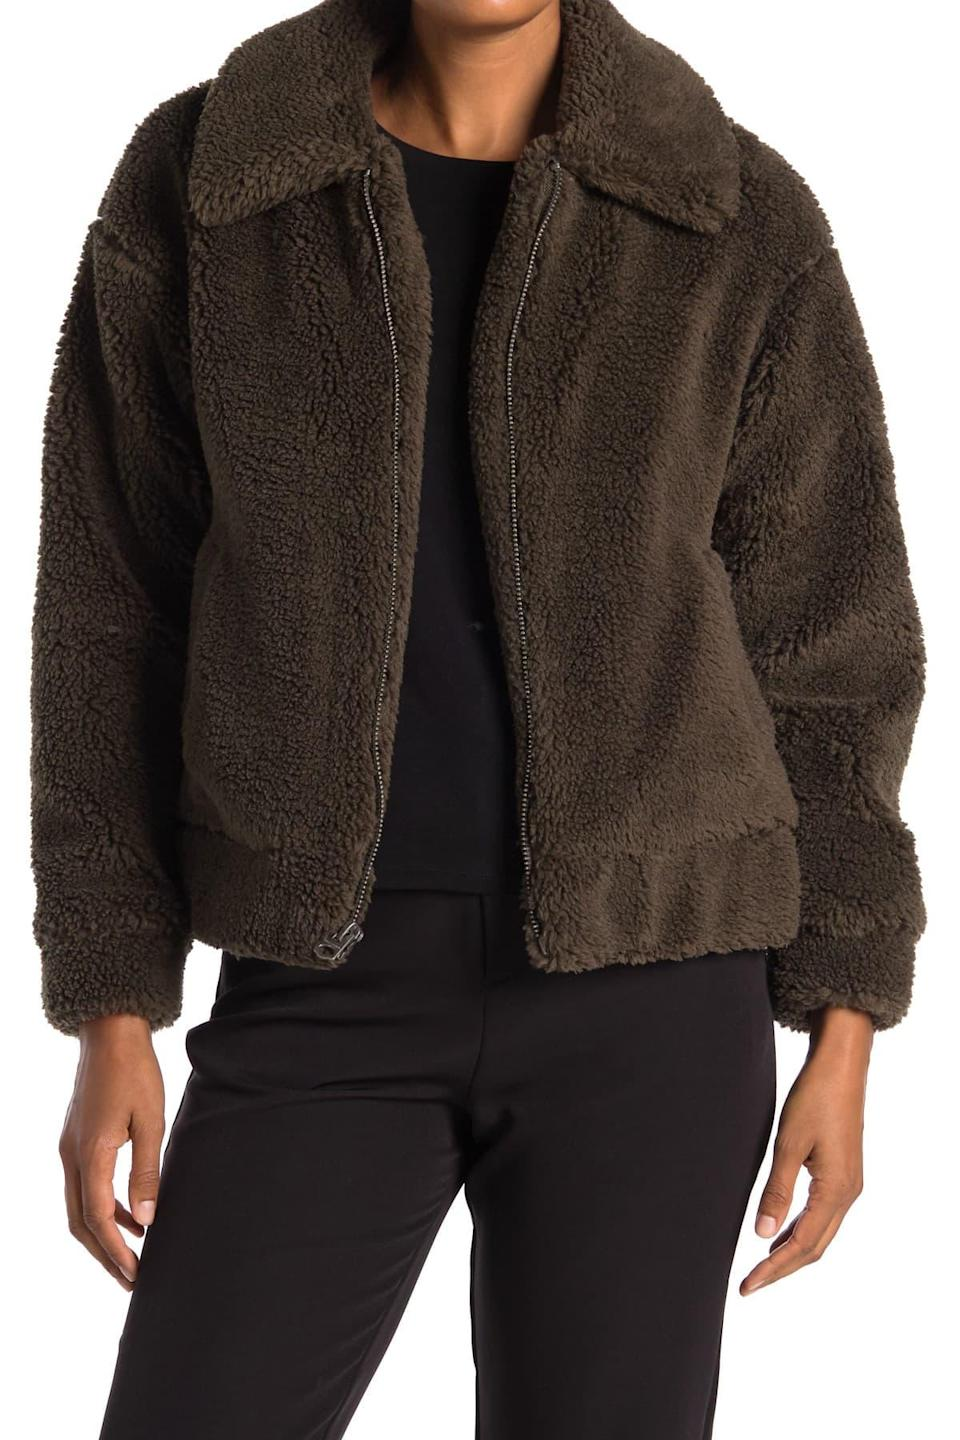 "<br><br><strong>Lucky Brand</strong> Short Faux Teddy Fur Jacket, $, available at <a href=""https://go.skimresources.com/?id=30283X879131&url=https%3A%2F%2Fwww.nordstromrack.com%2Fs%2Flucky-brand-short-faux-teddy-fur-jacket%2Fn3236158"" rel=""nofollow noopener"" target=""_blank"" data-ylk=""slk:Nordstrom Rack"" class=""link rapid-noclick-resp"">Nordstrom Rack</a>"